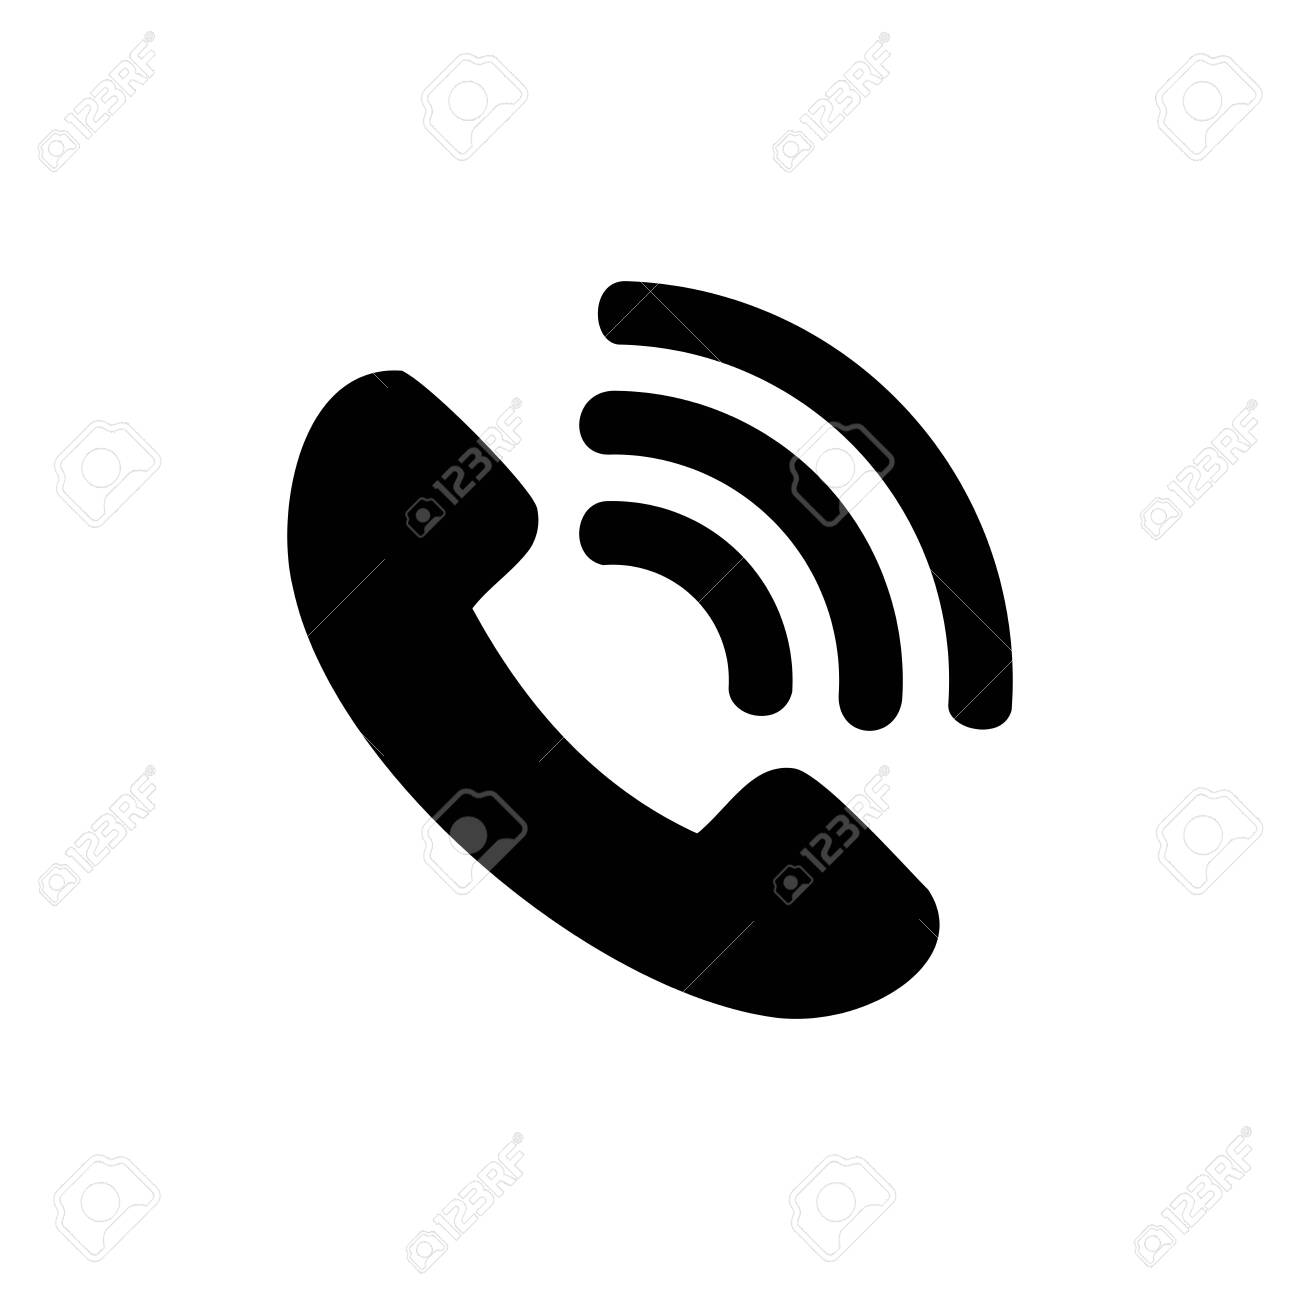 Call Phone Icon,telephone Icon Vector Design Symbol Royalty Free Cliparts,  Vectors, And Stock Illustration. Image 141181865.